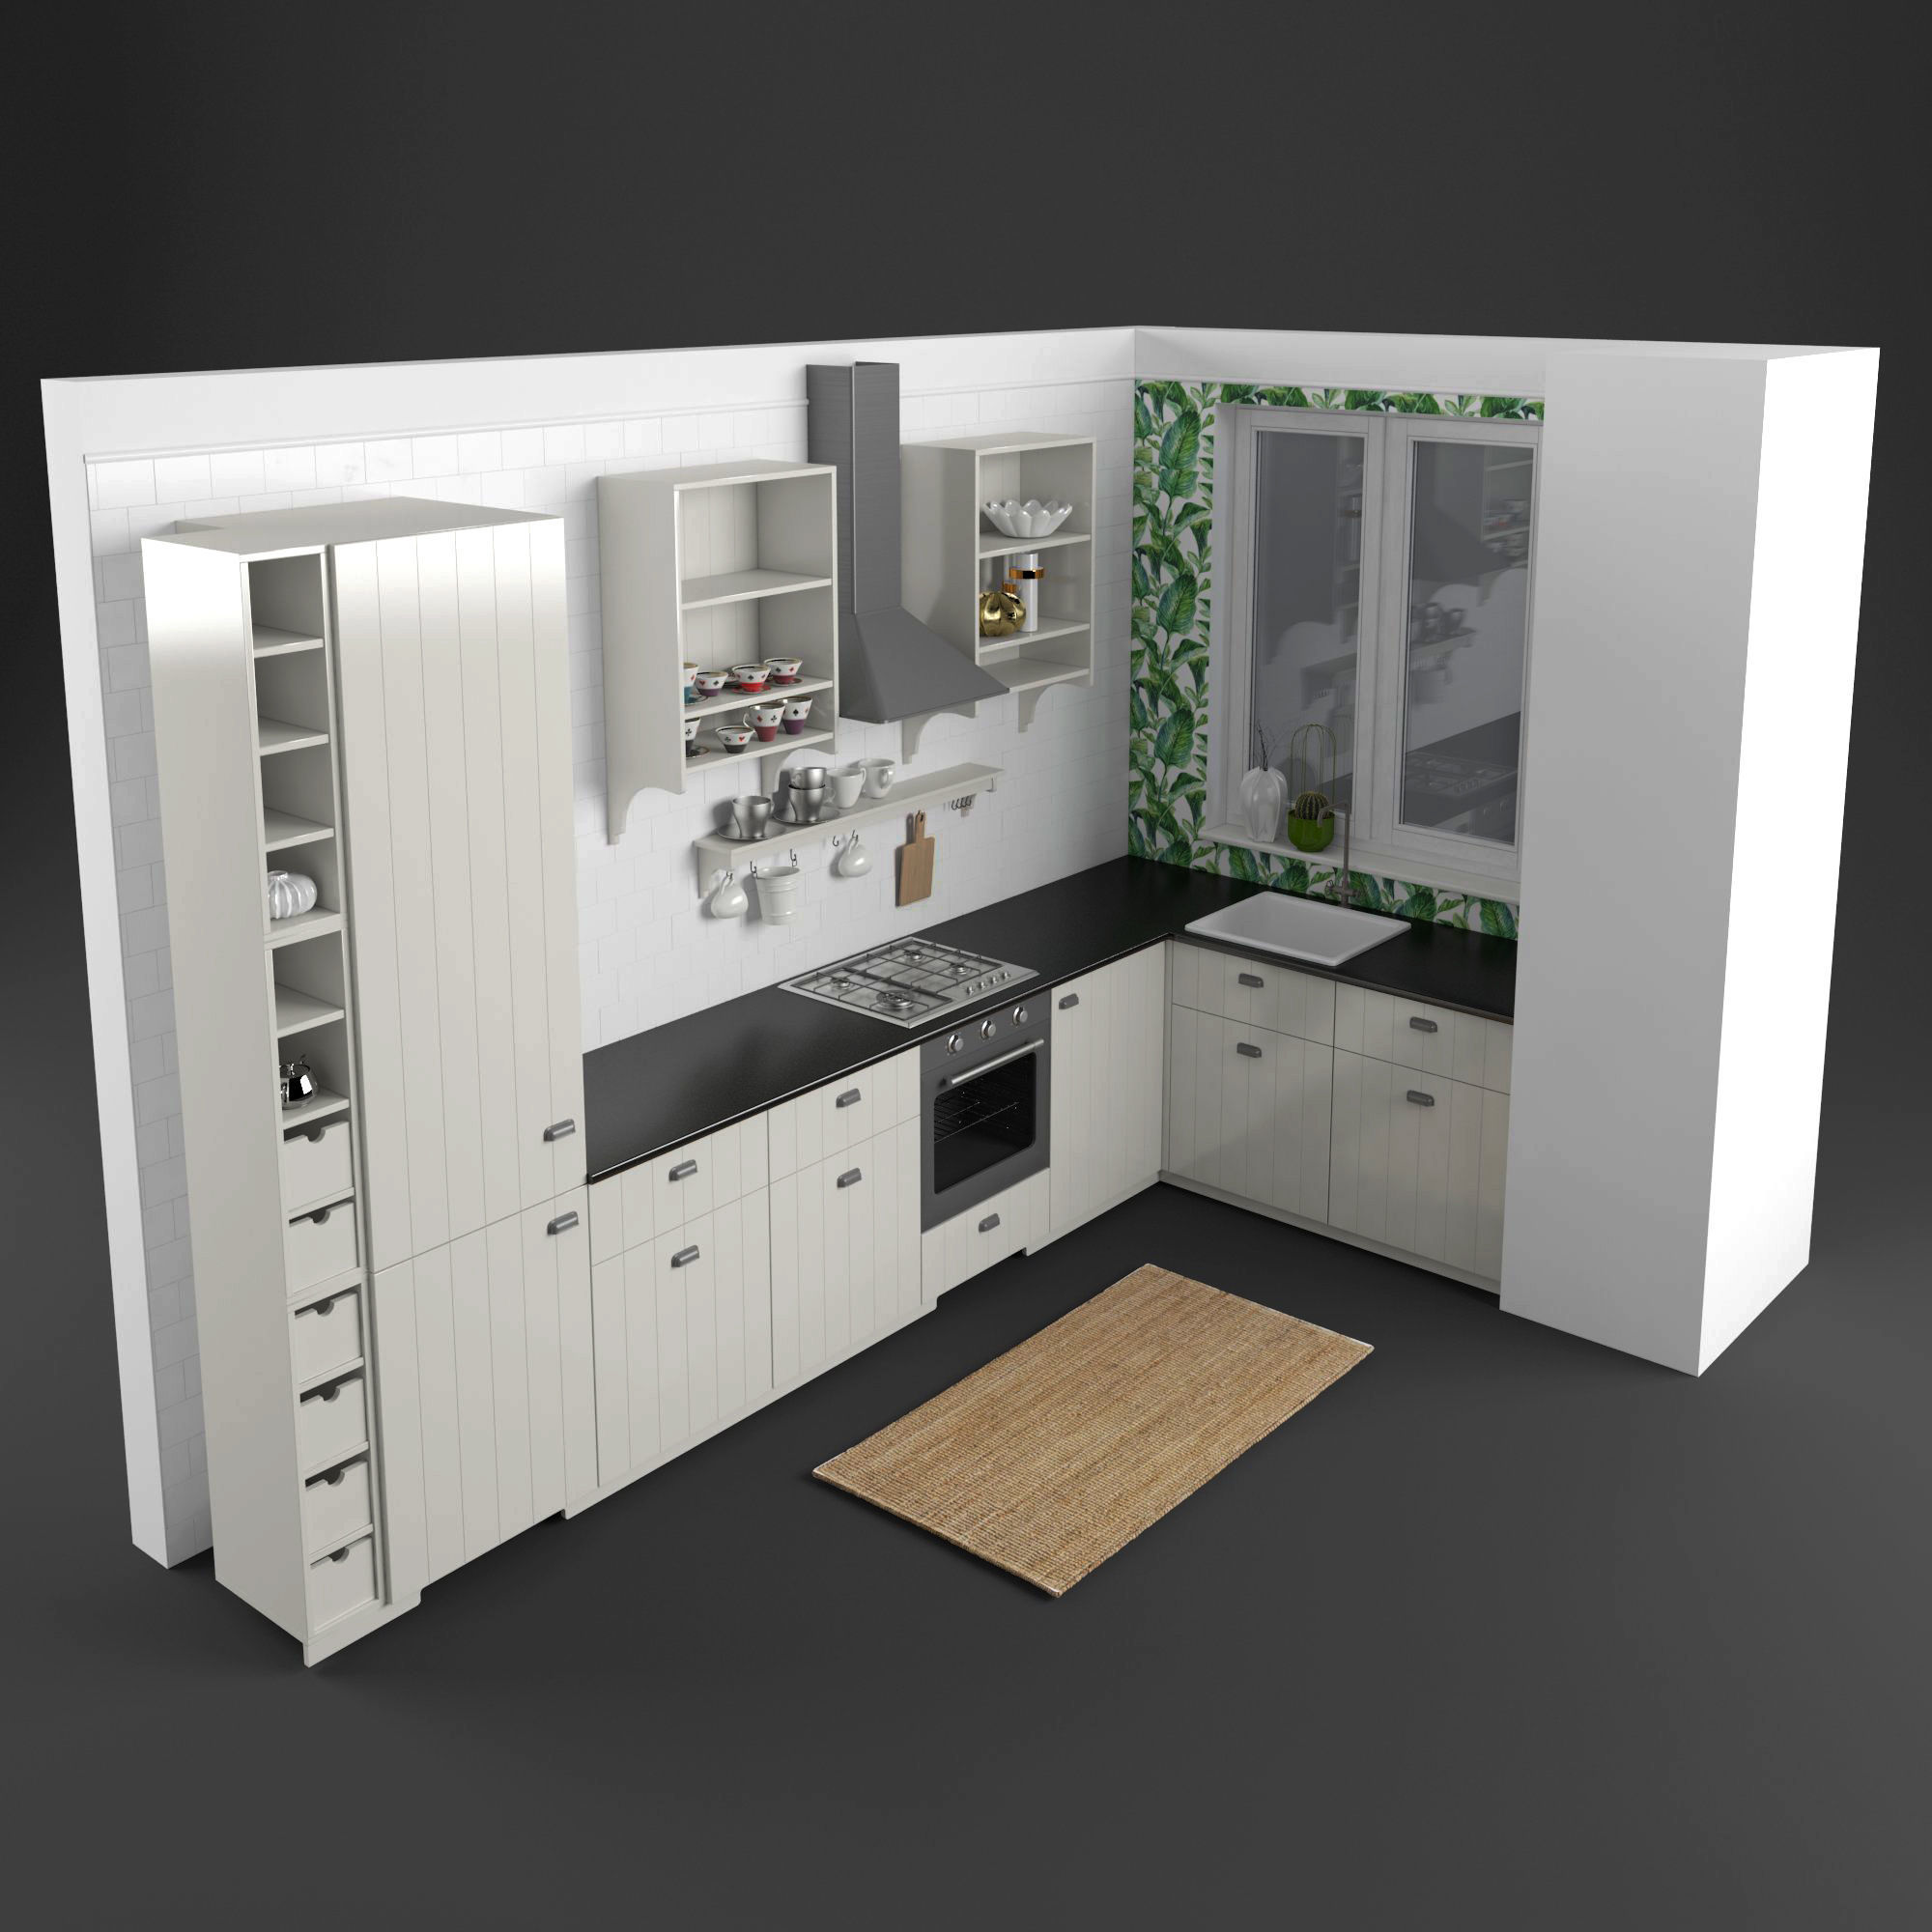 Ikea Kitchen Set 1 3d Model